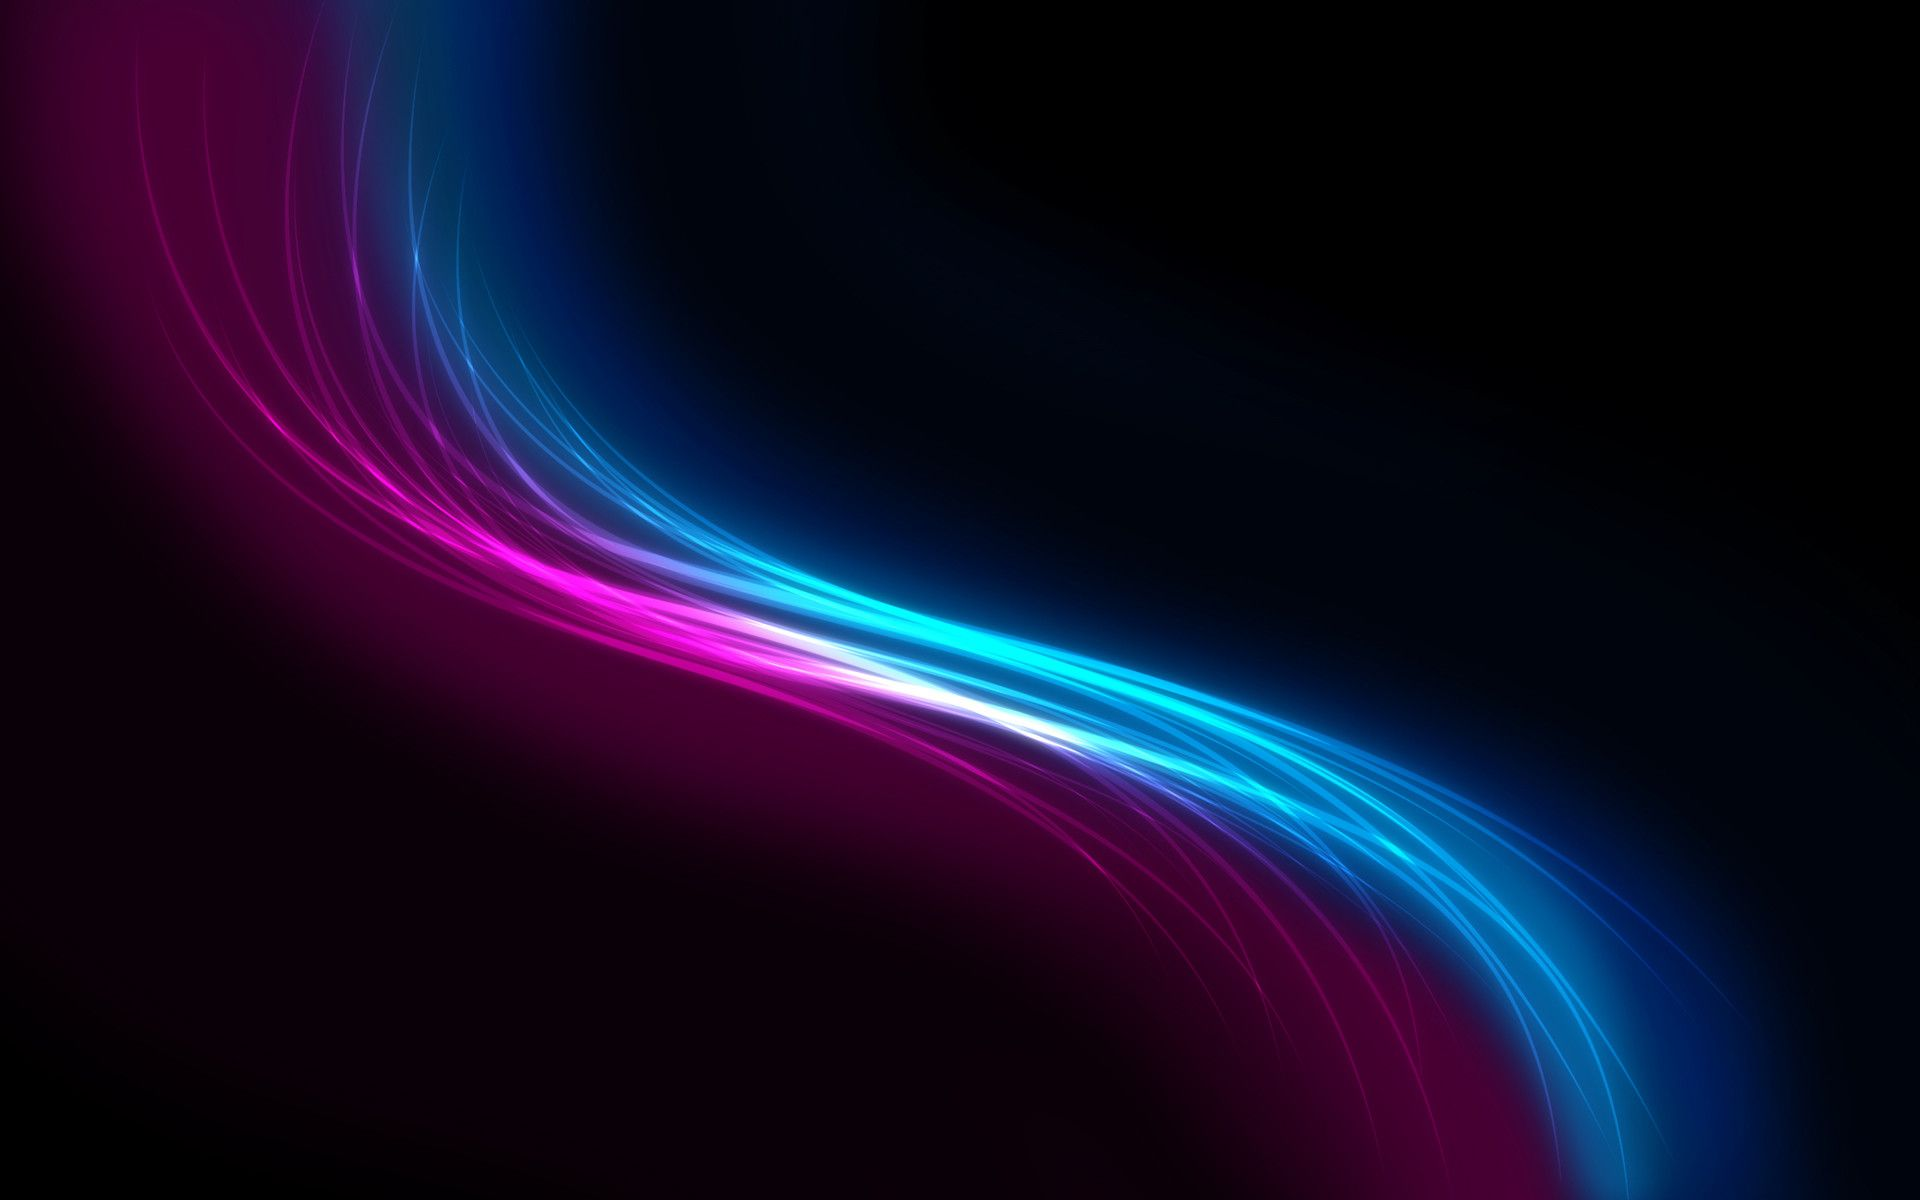 64 Ios Dynamic Wallpapers On Wallpaperplay Black Background Wallpaper Abstract Abstract Wallpaper